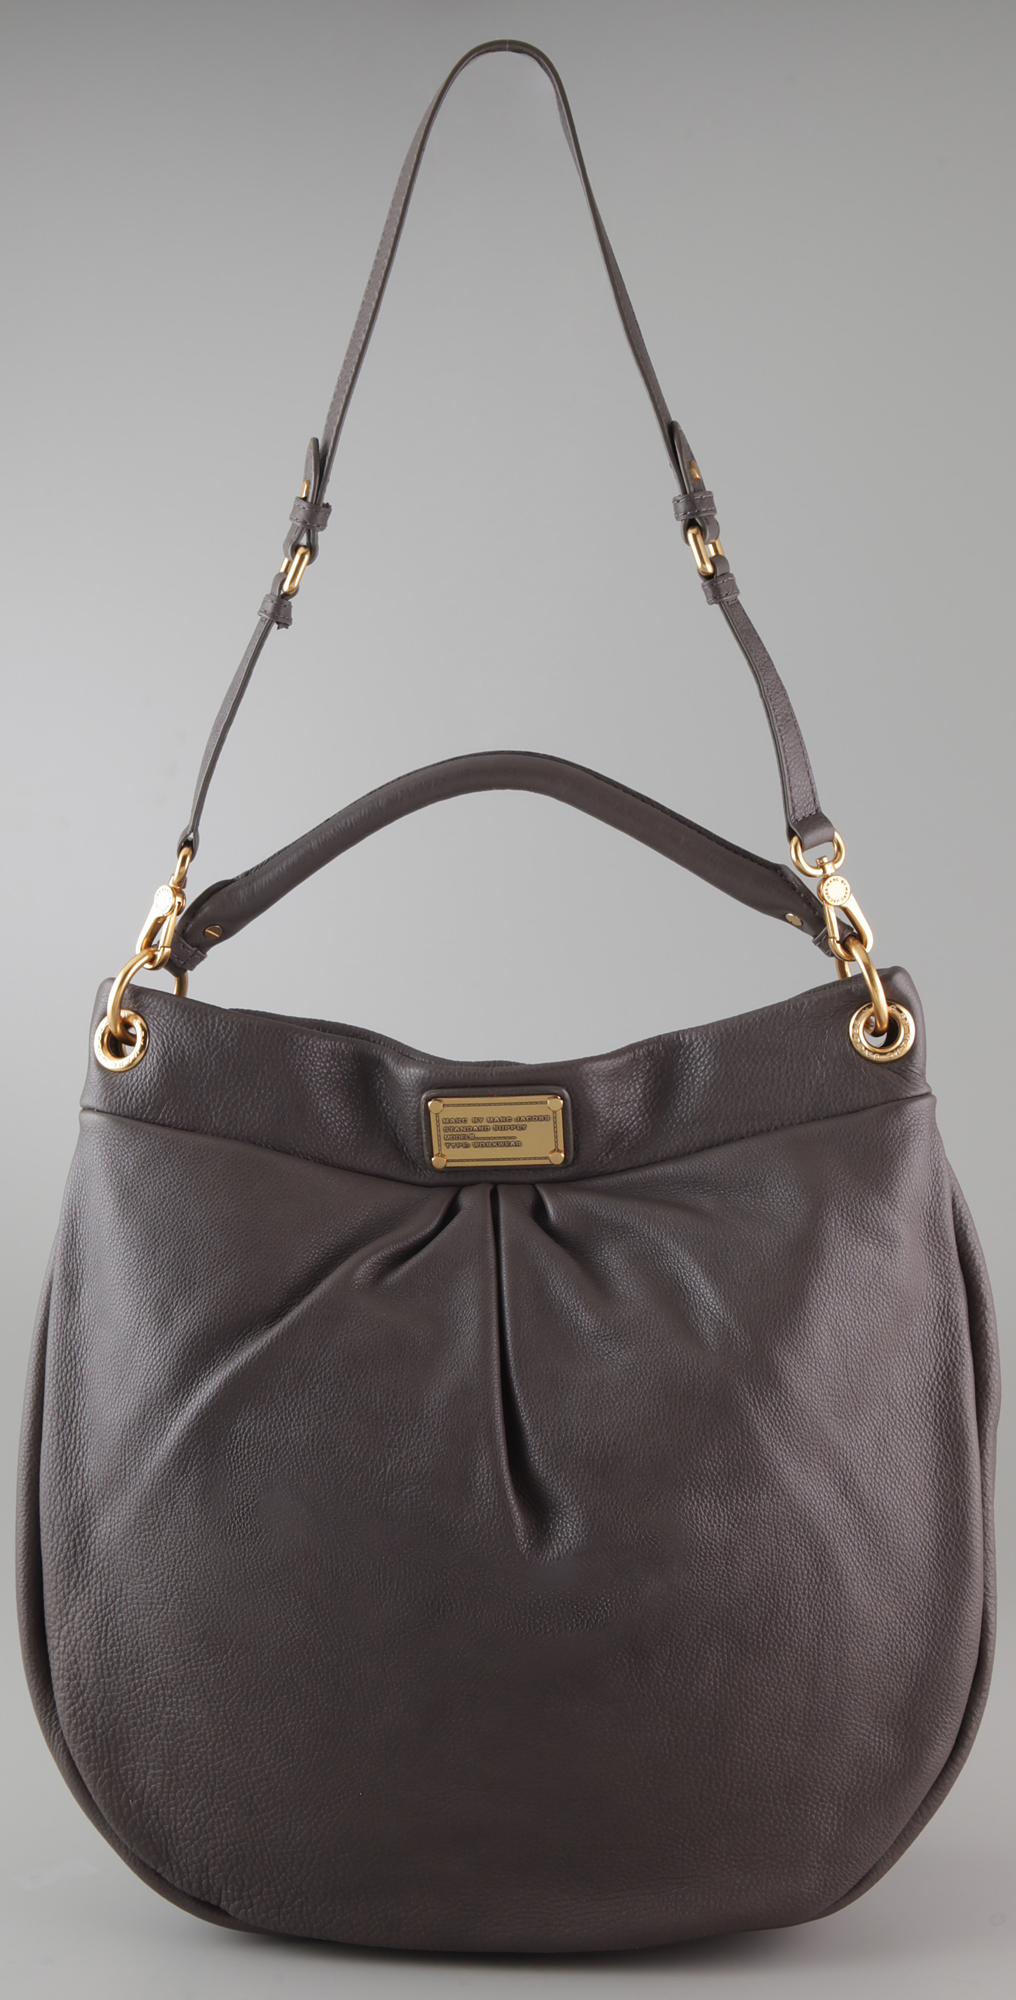 Lyst - Marc By Marc Jacobs Classic Q Huge Hillier Hobo Black in Gray e76c34af045ce